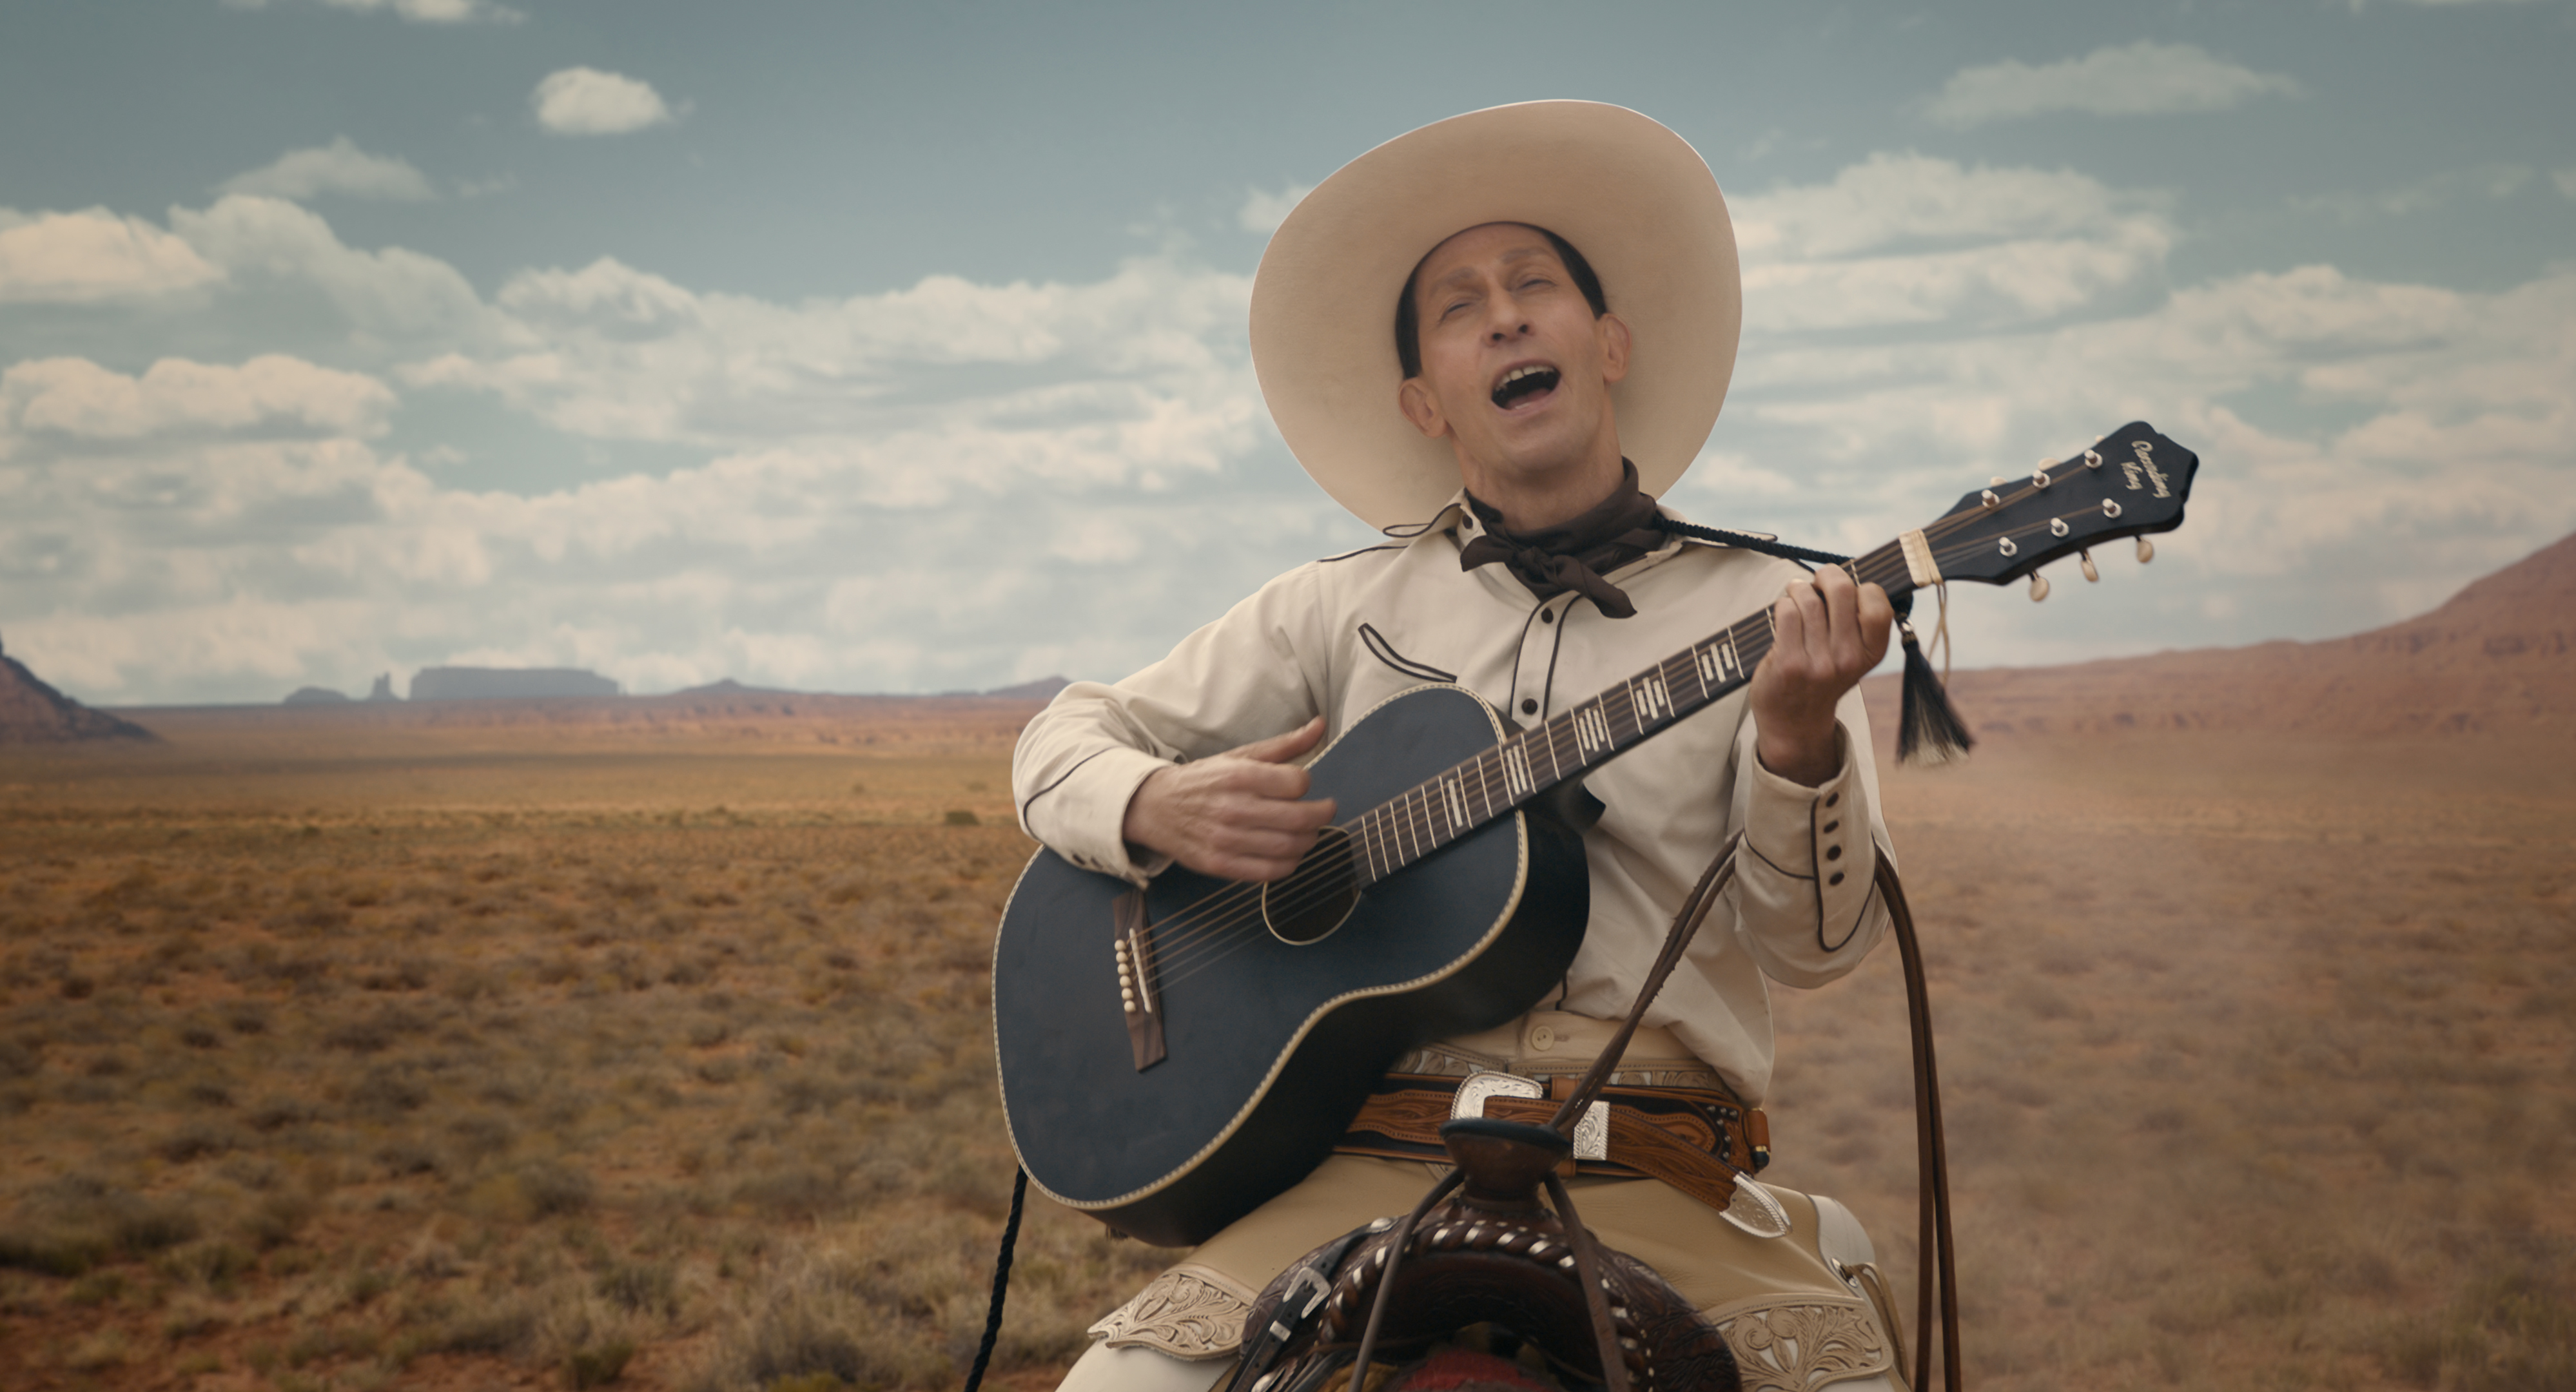 The Ballad of Buster Scruggs is an old West folk tale, with a signature Coen brothers twist